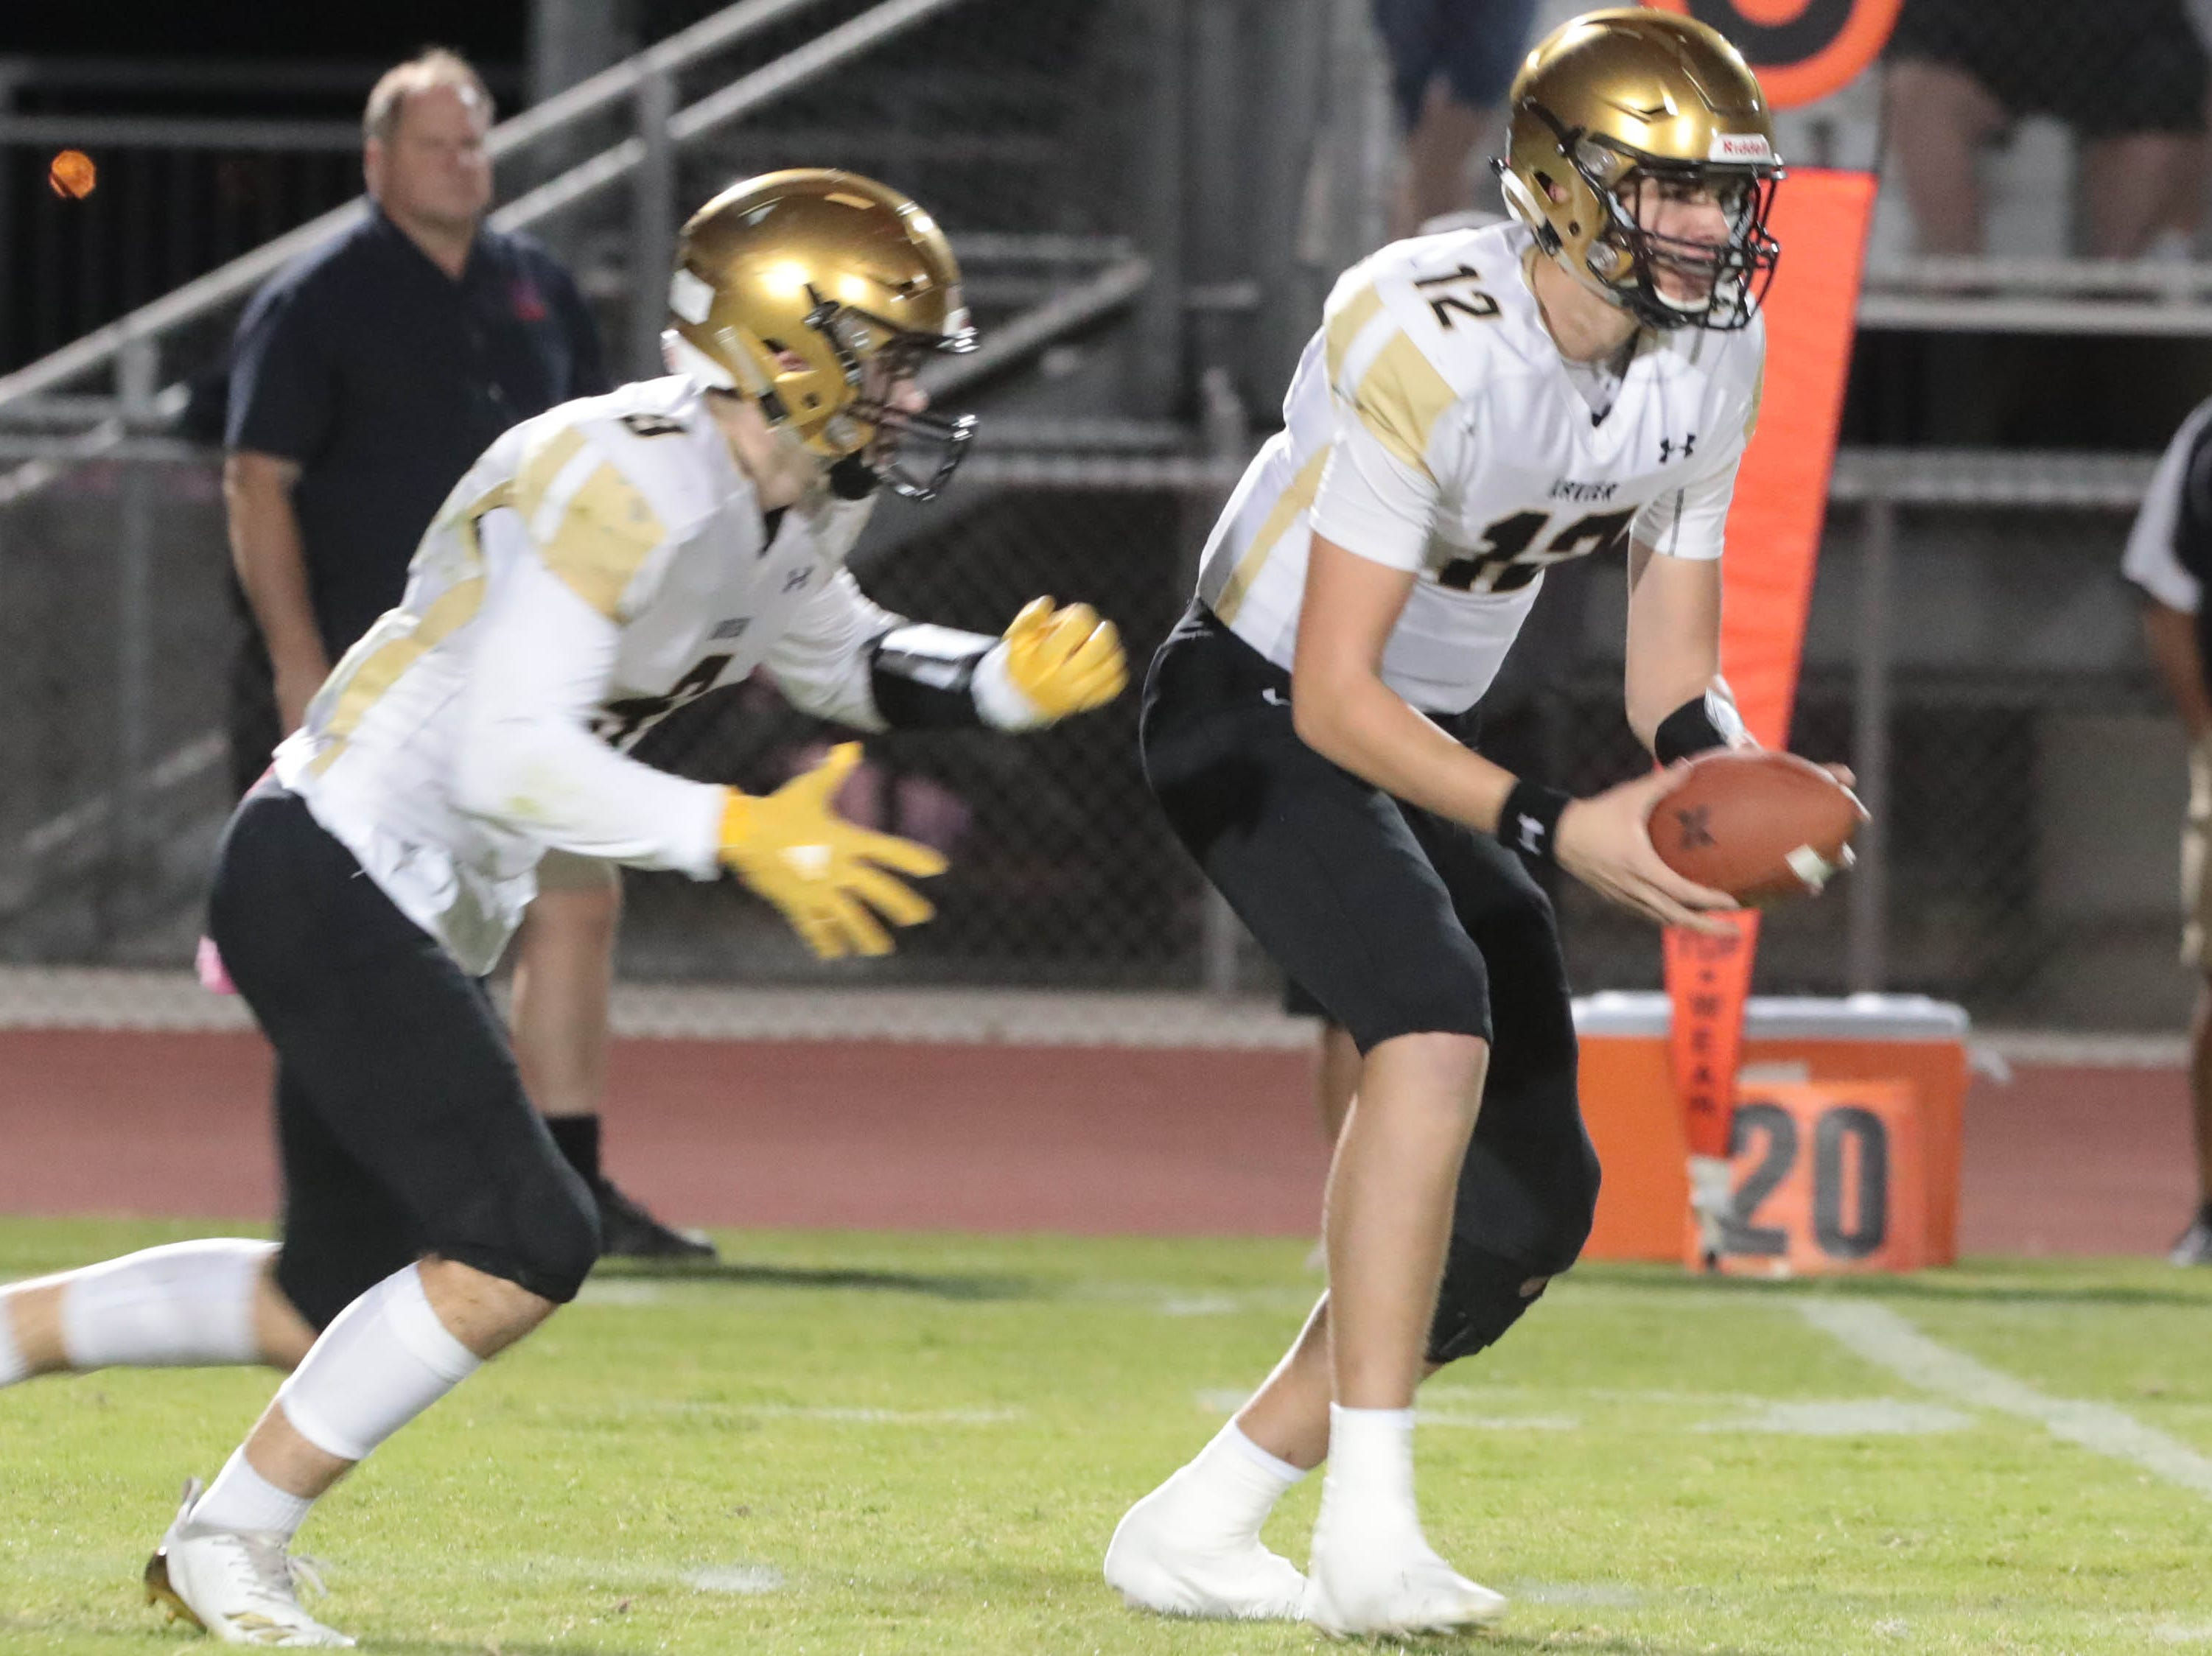 Xavier Prep quarterback Brad Mcclure hands off to Fabrice Voyne against Shadow Hills on Thursday, October 11, 2018 in Indio.